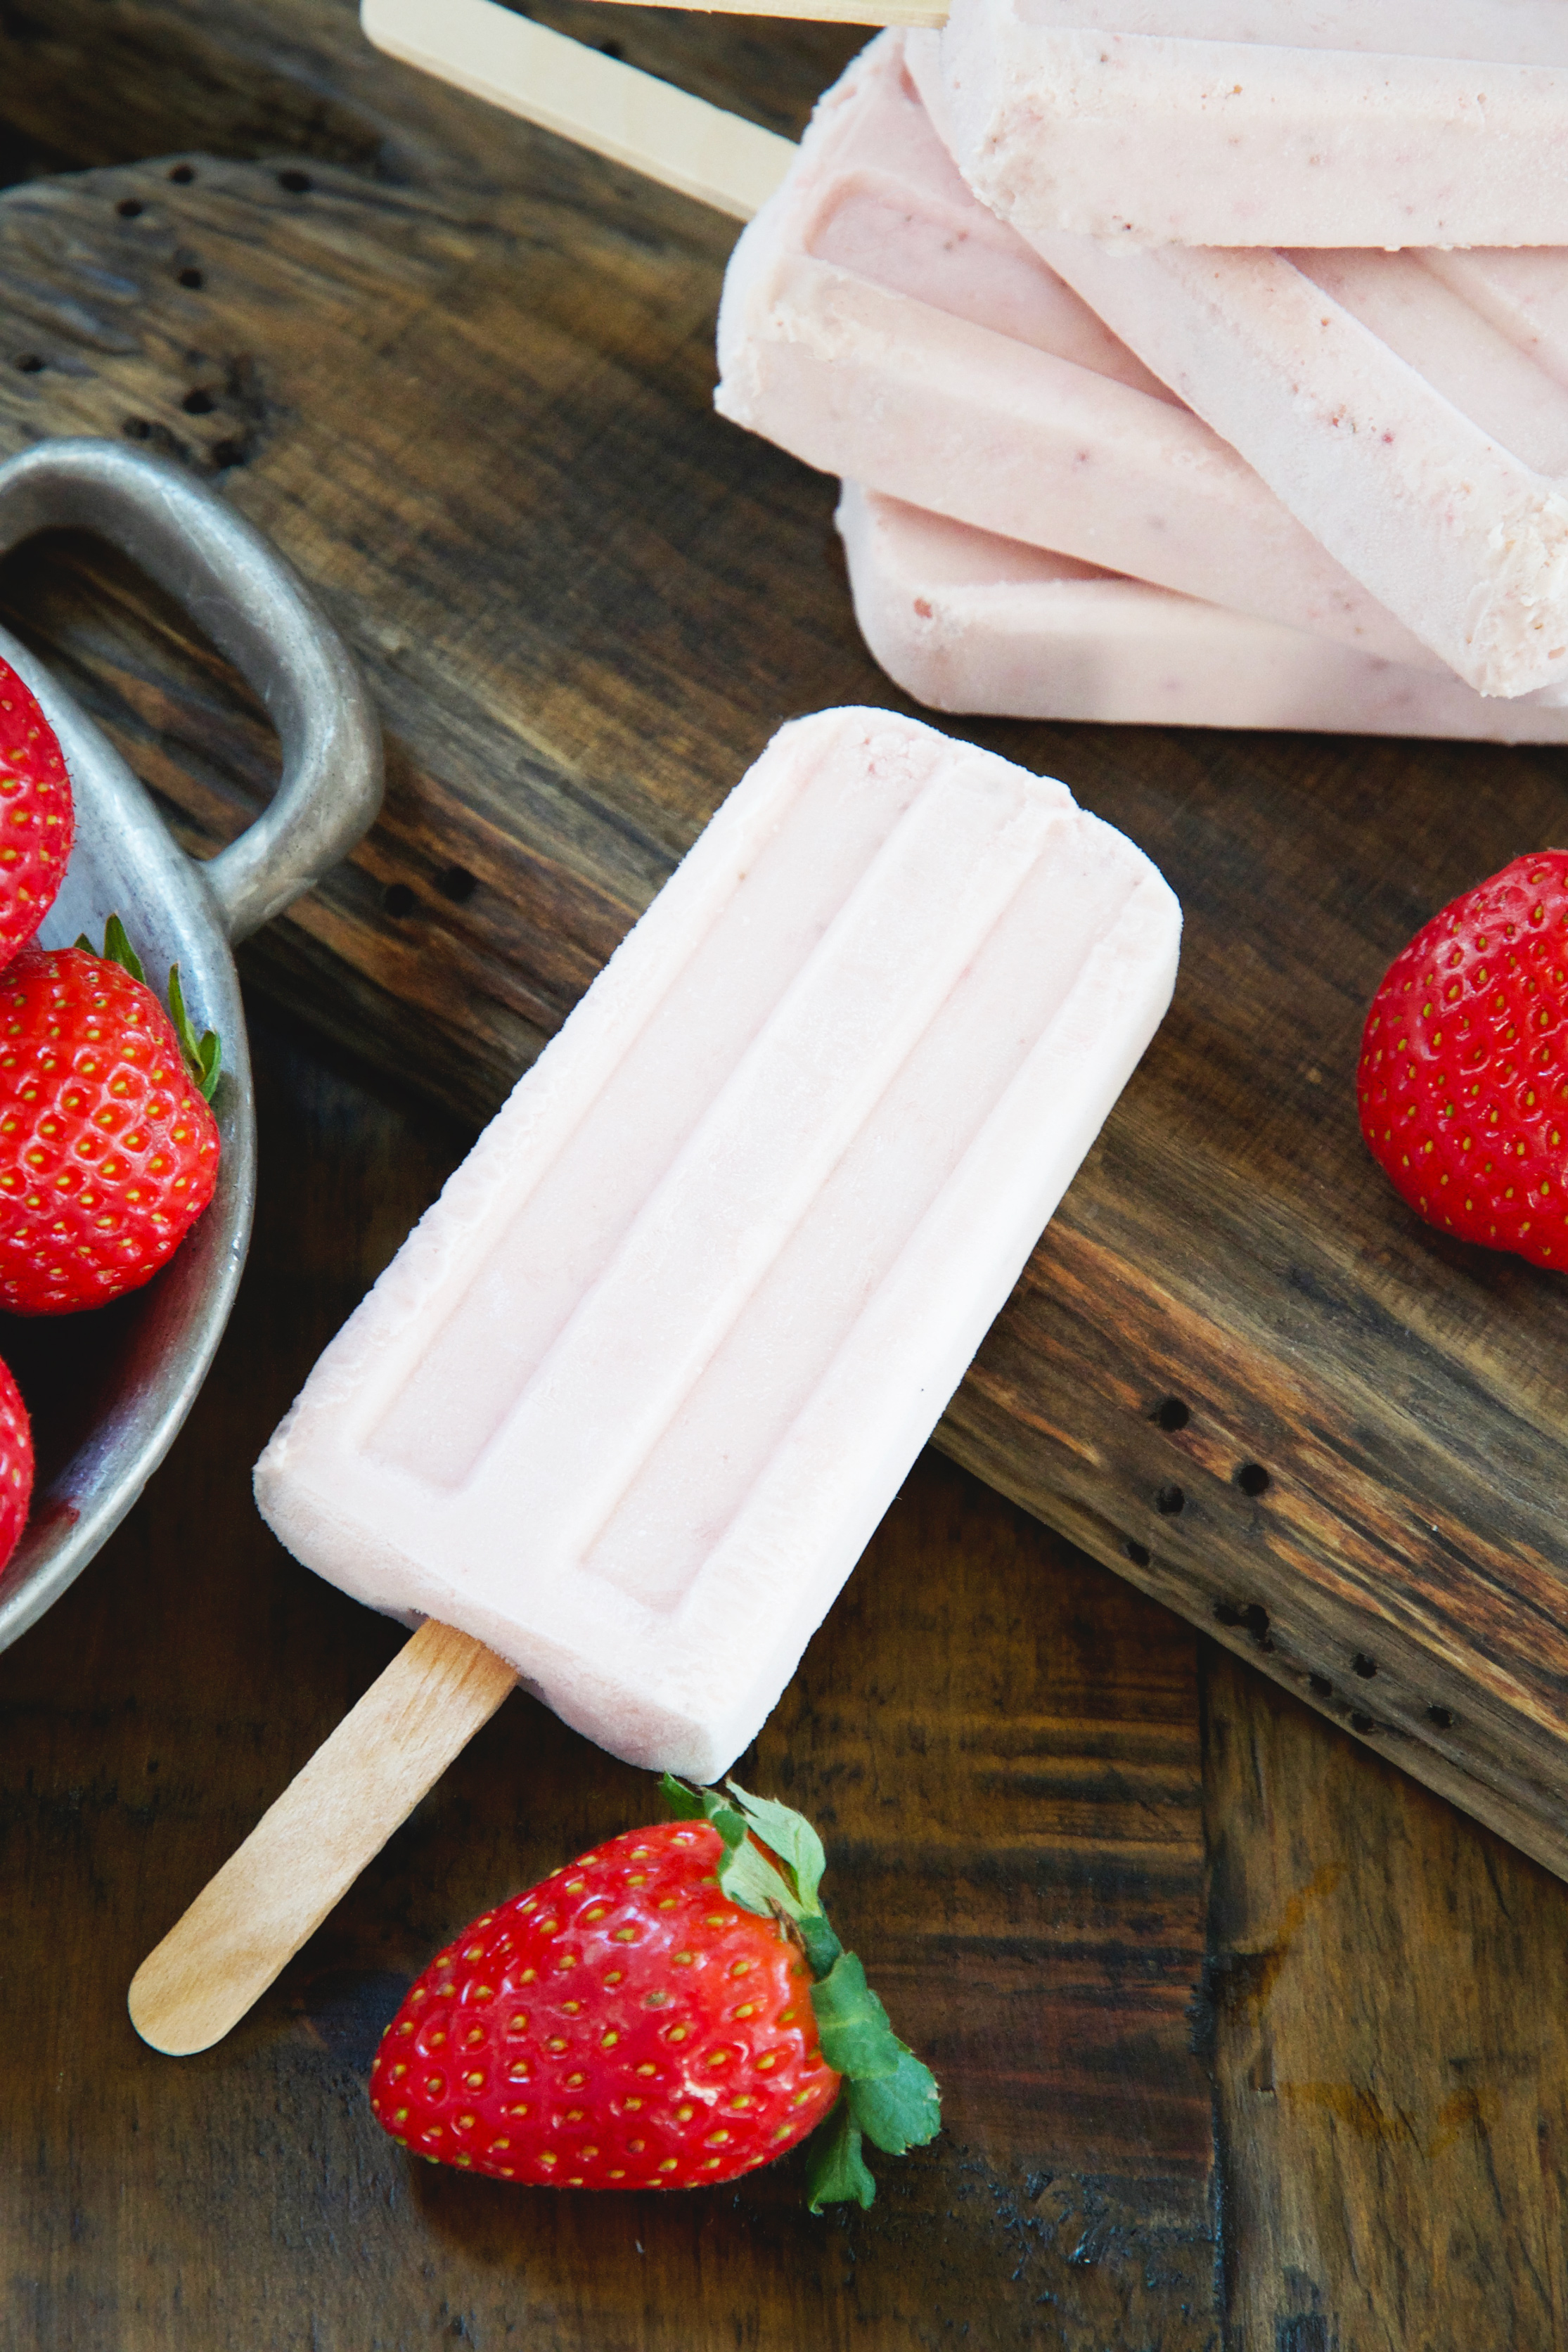 Low-Carb Strawberry Cream Popsicles One on cutting board with a stack behind.